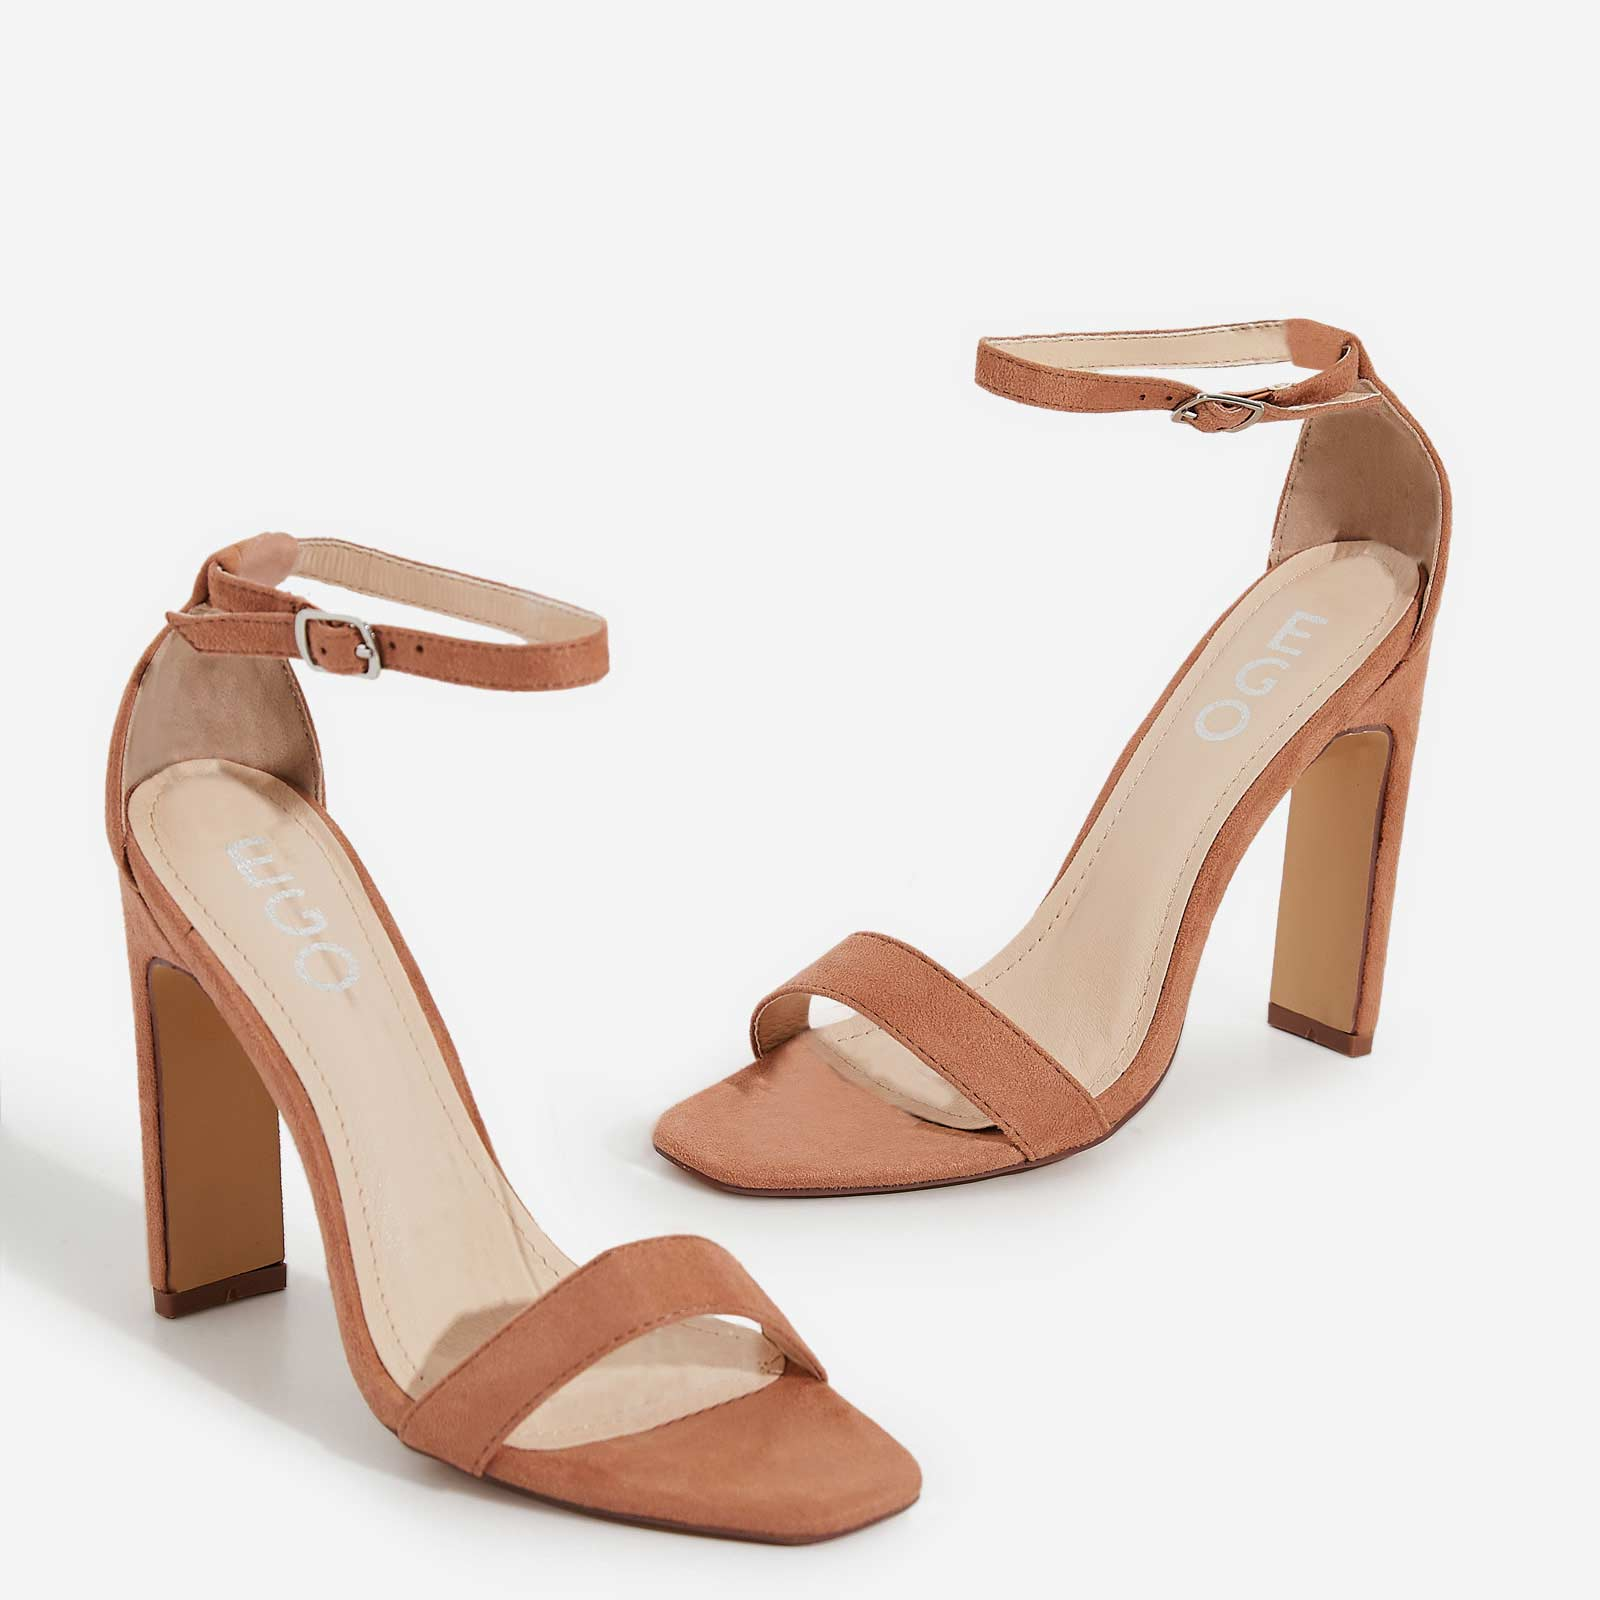 Crown Barely There Thin Block Heel In Nude Faux Suede